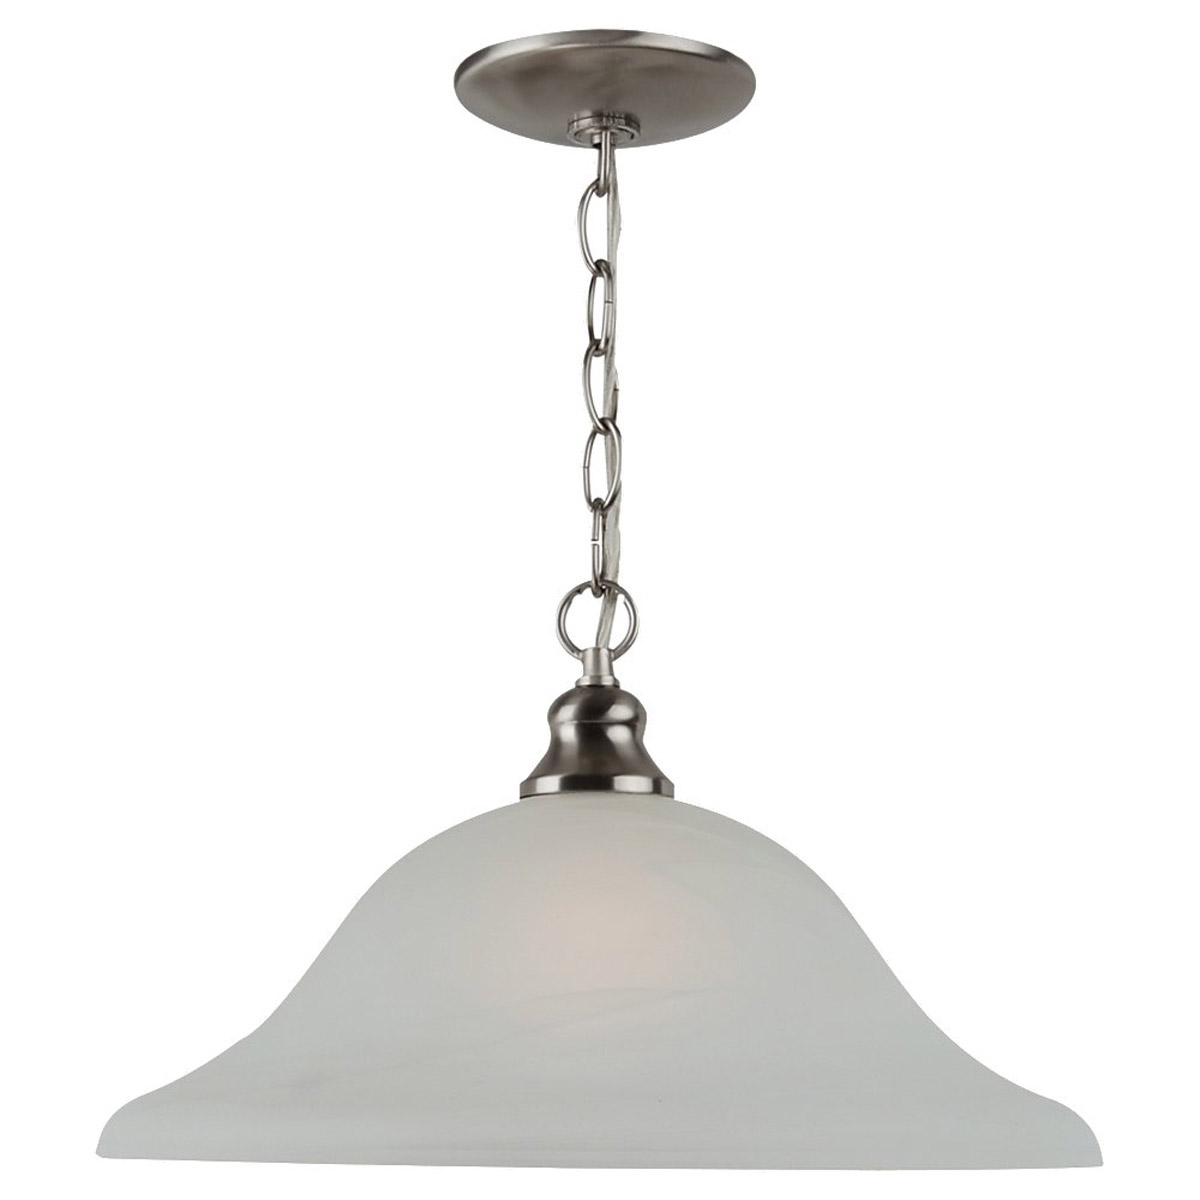 Sea Gull Lighting Windgate 1 Light Pendant in Brushed Nickel 65940-962 photo